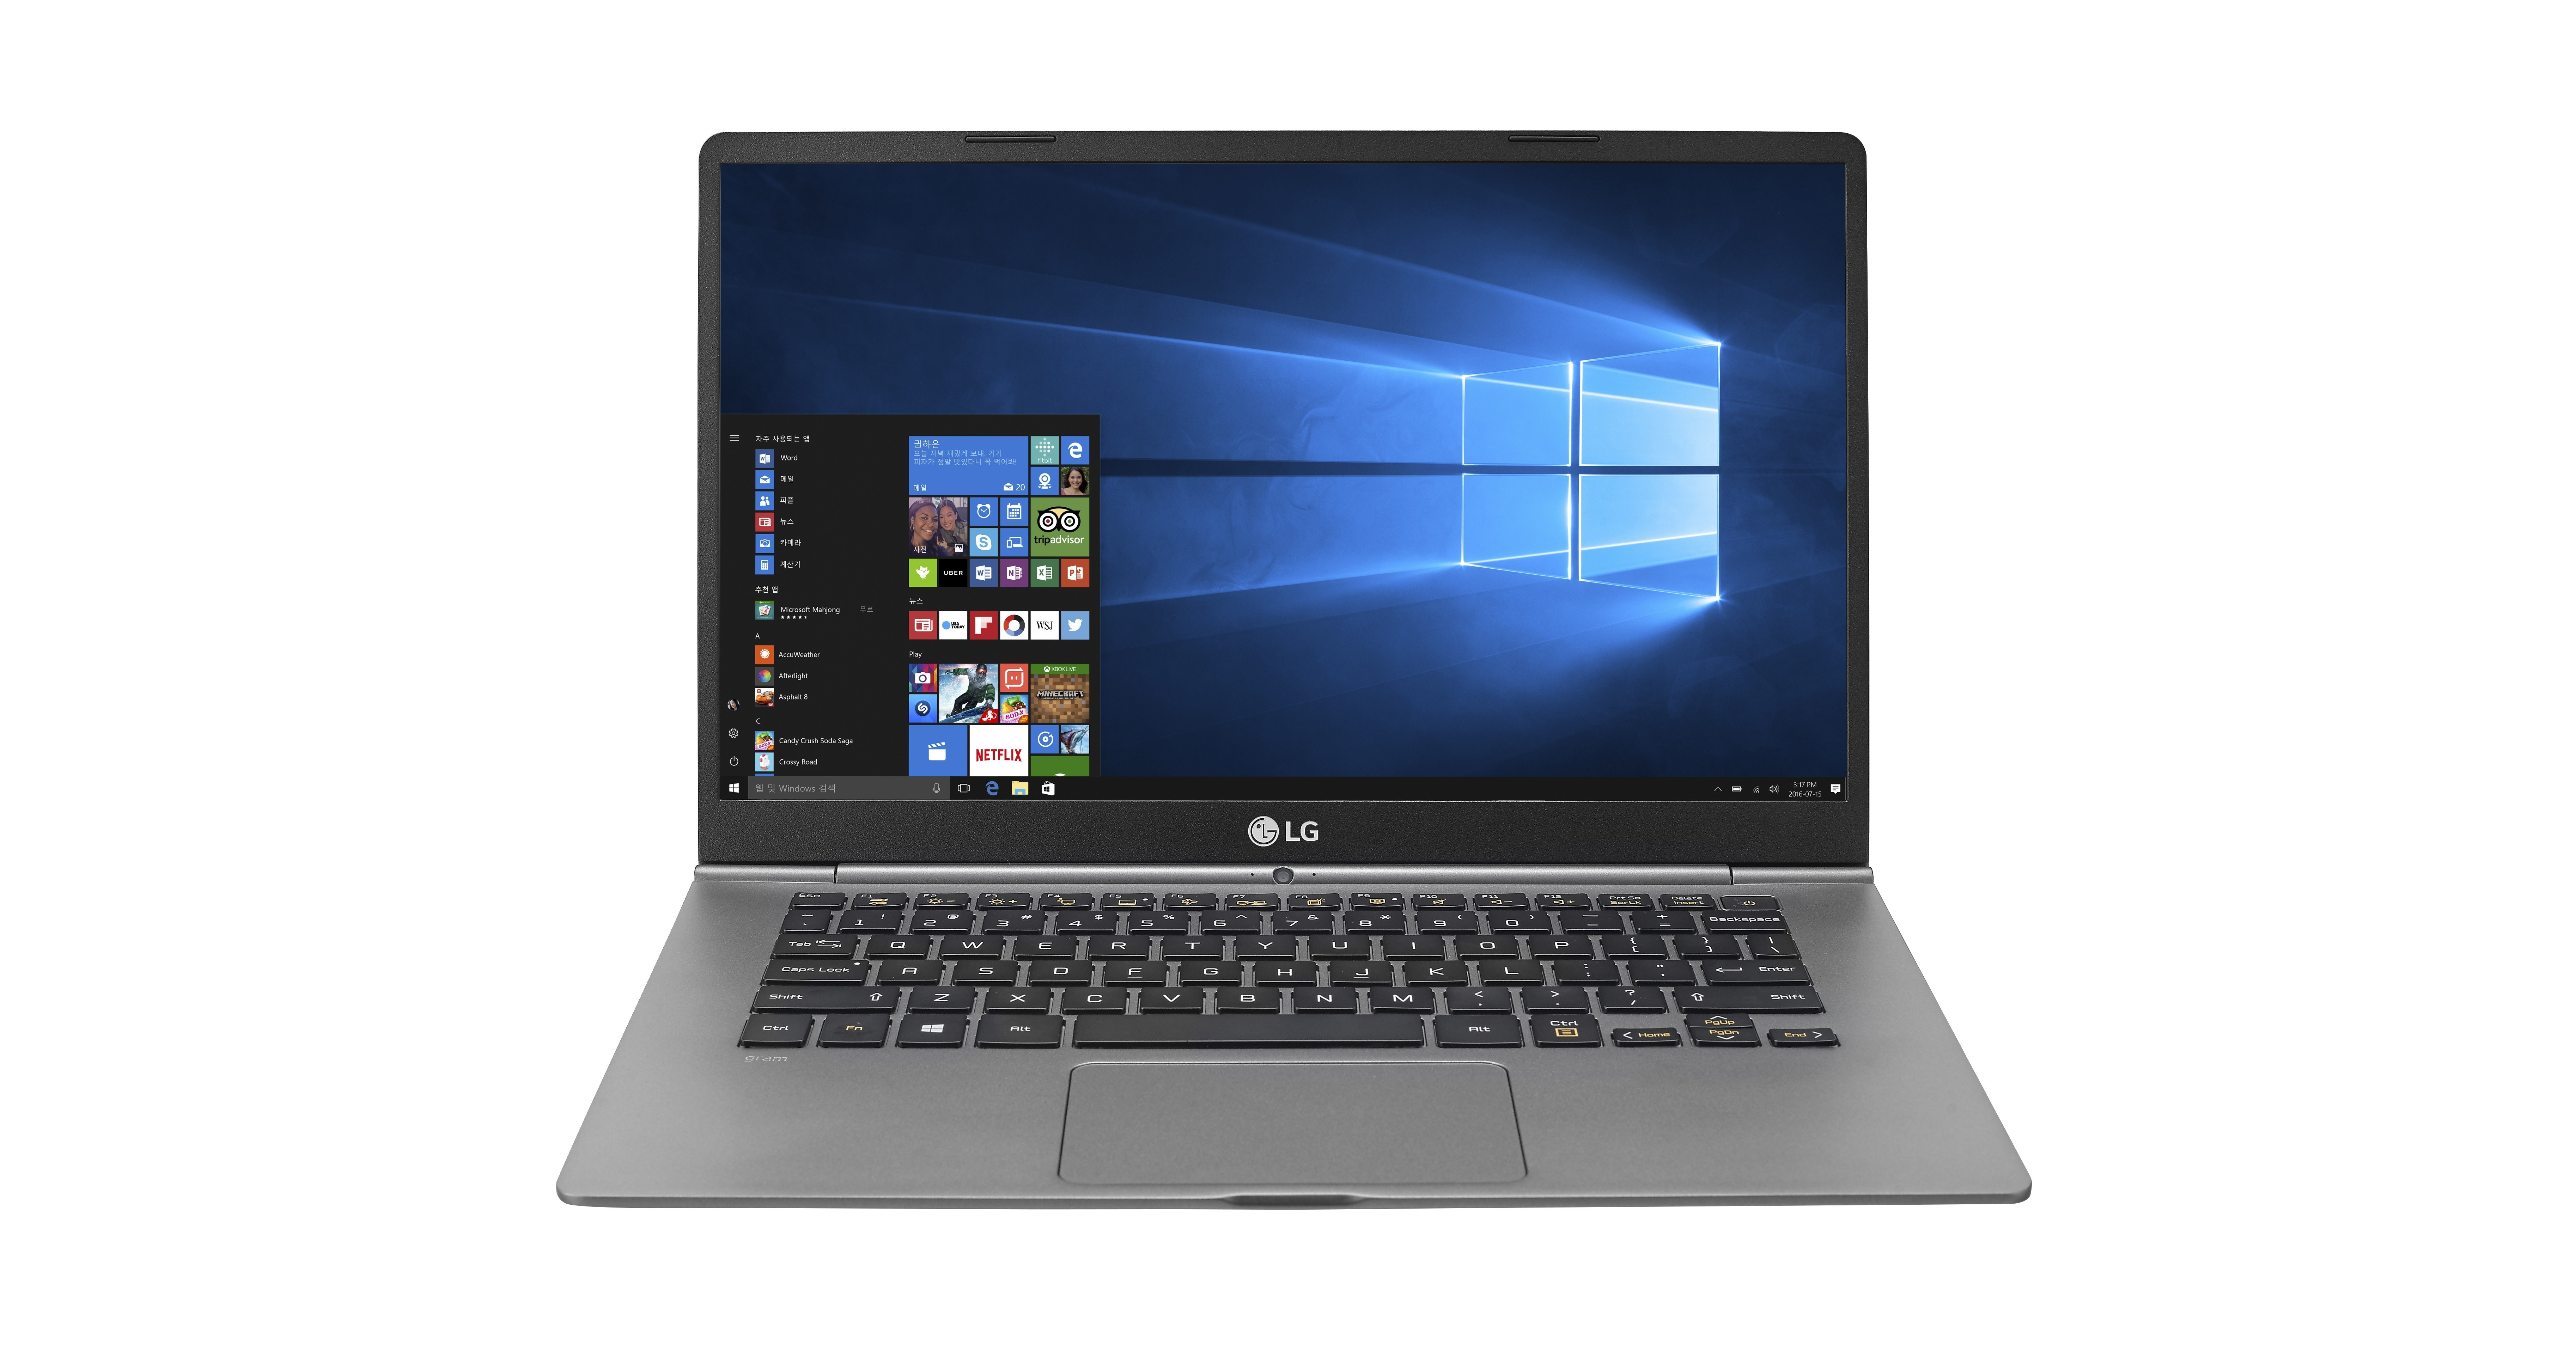 ASUS NOTEBOOK NVIDIA WISTRON GRAPHICS WINDOWS 7